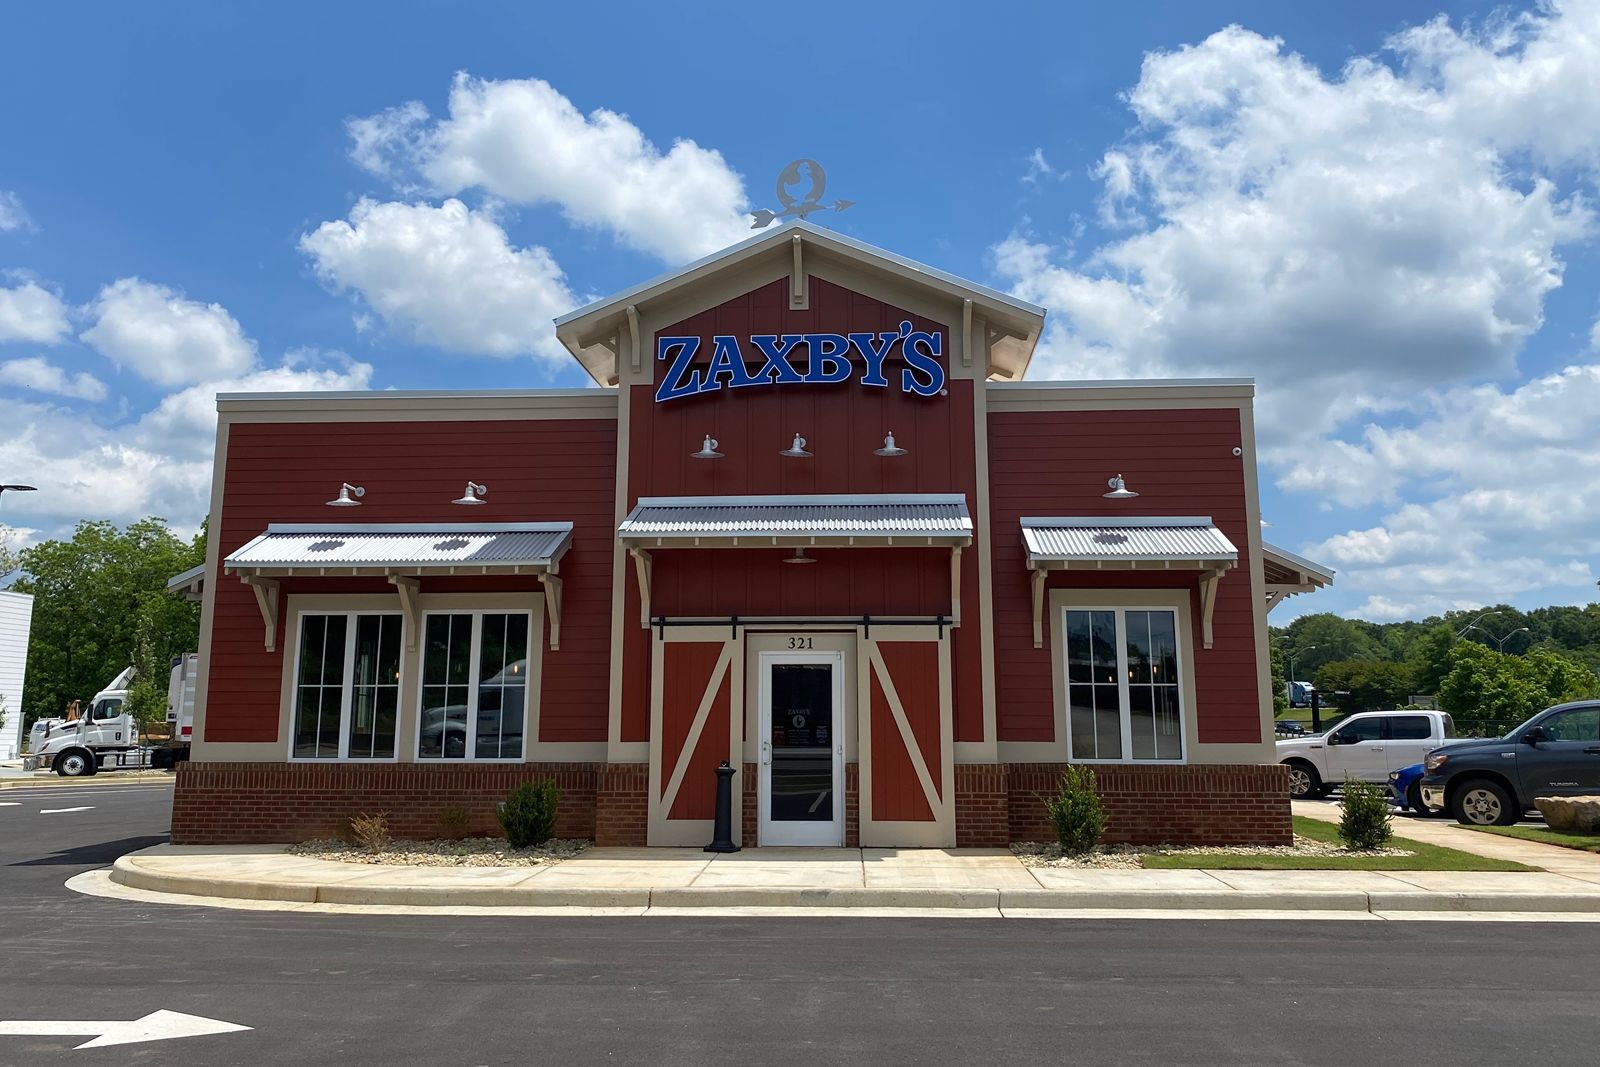 Zaxby's Expands With First Forsyth, Georgia Restaurant